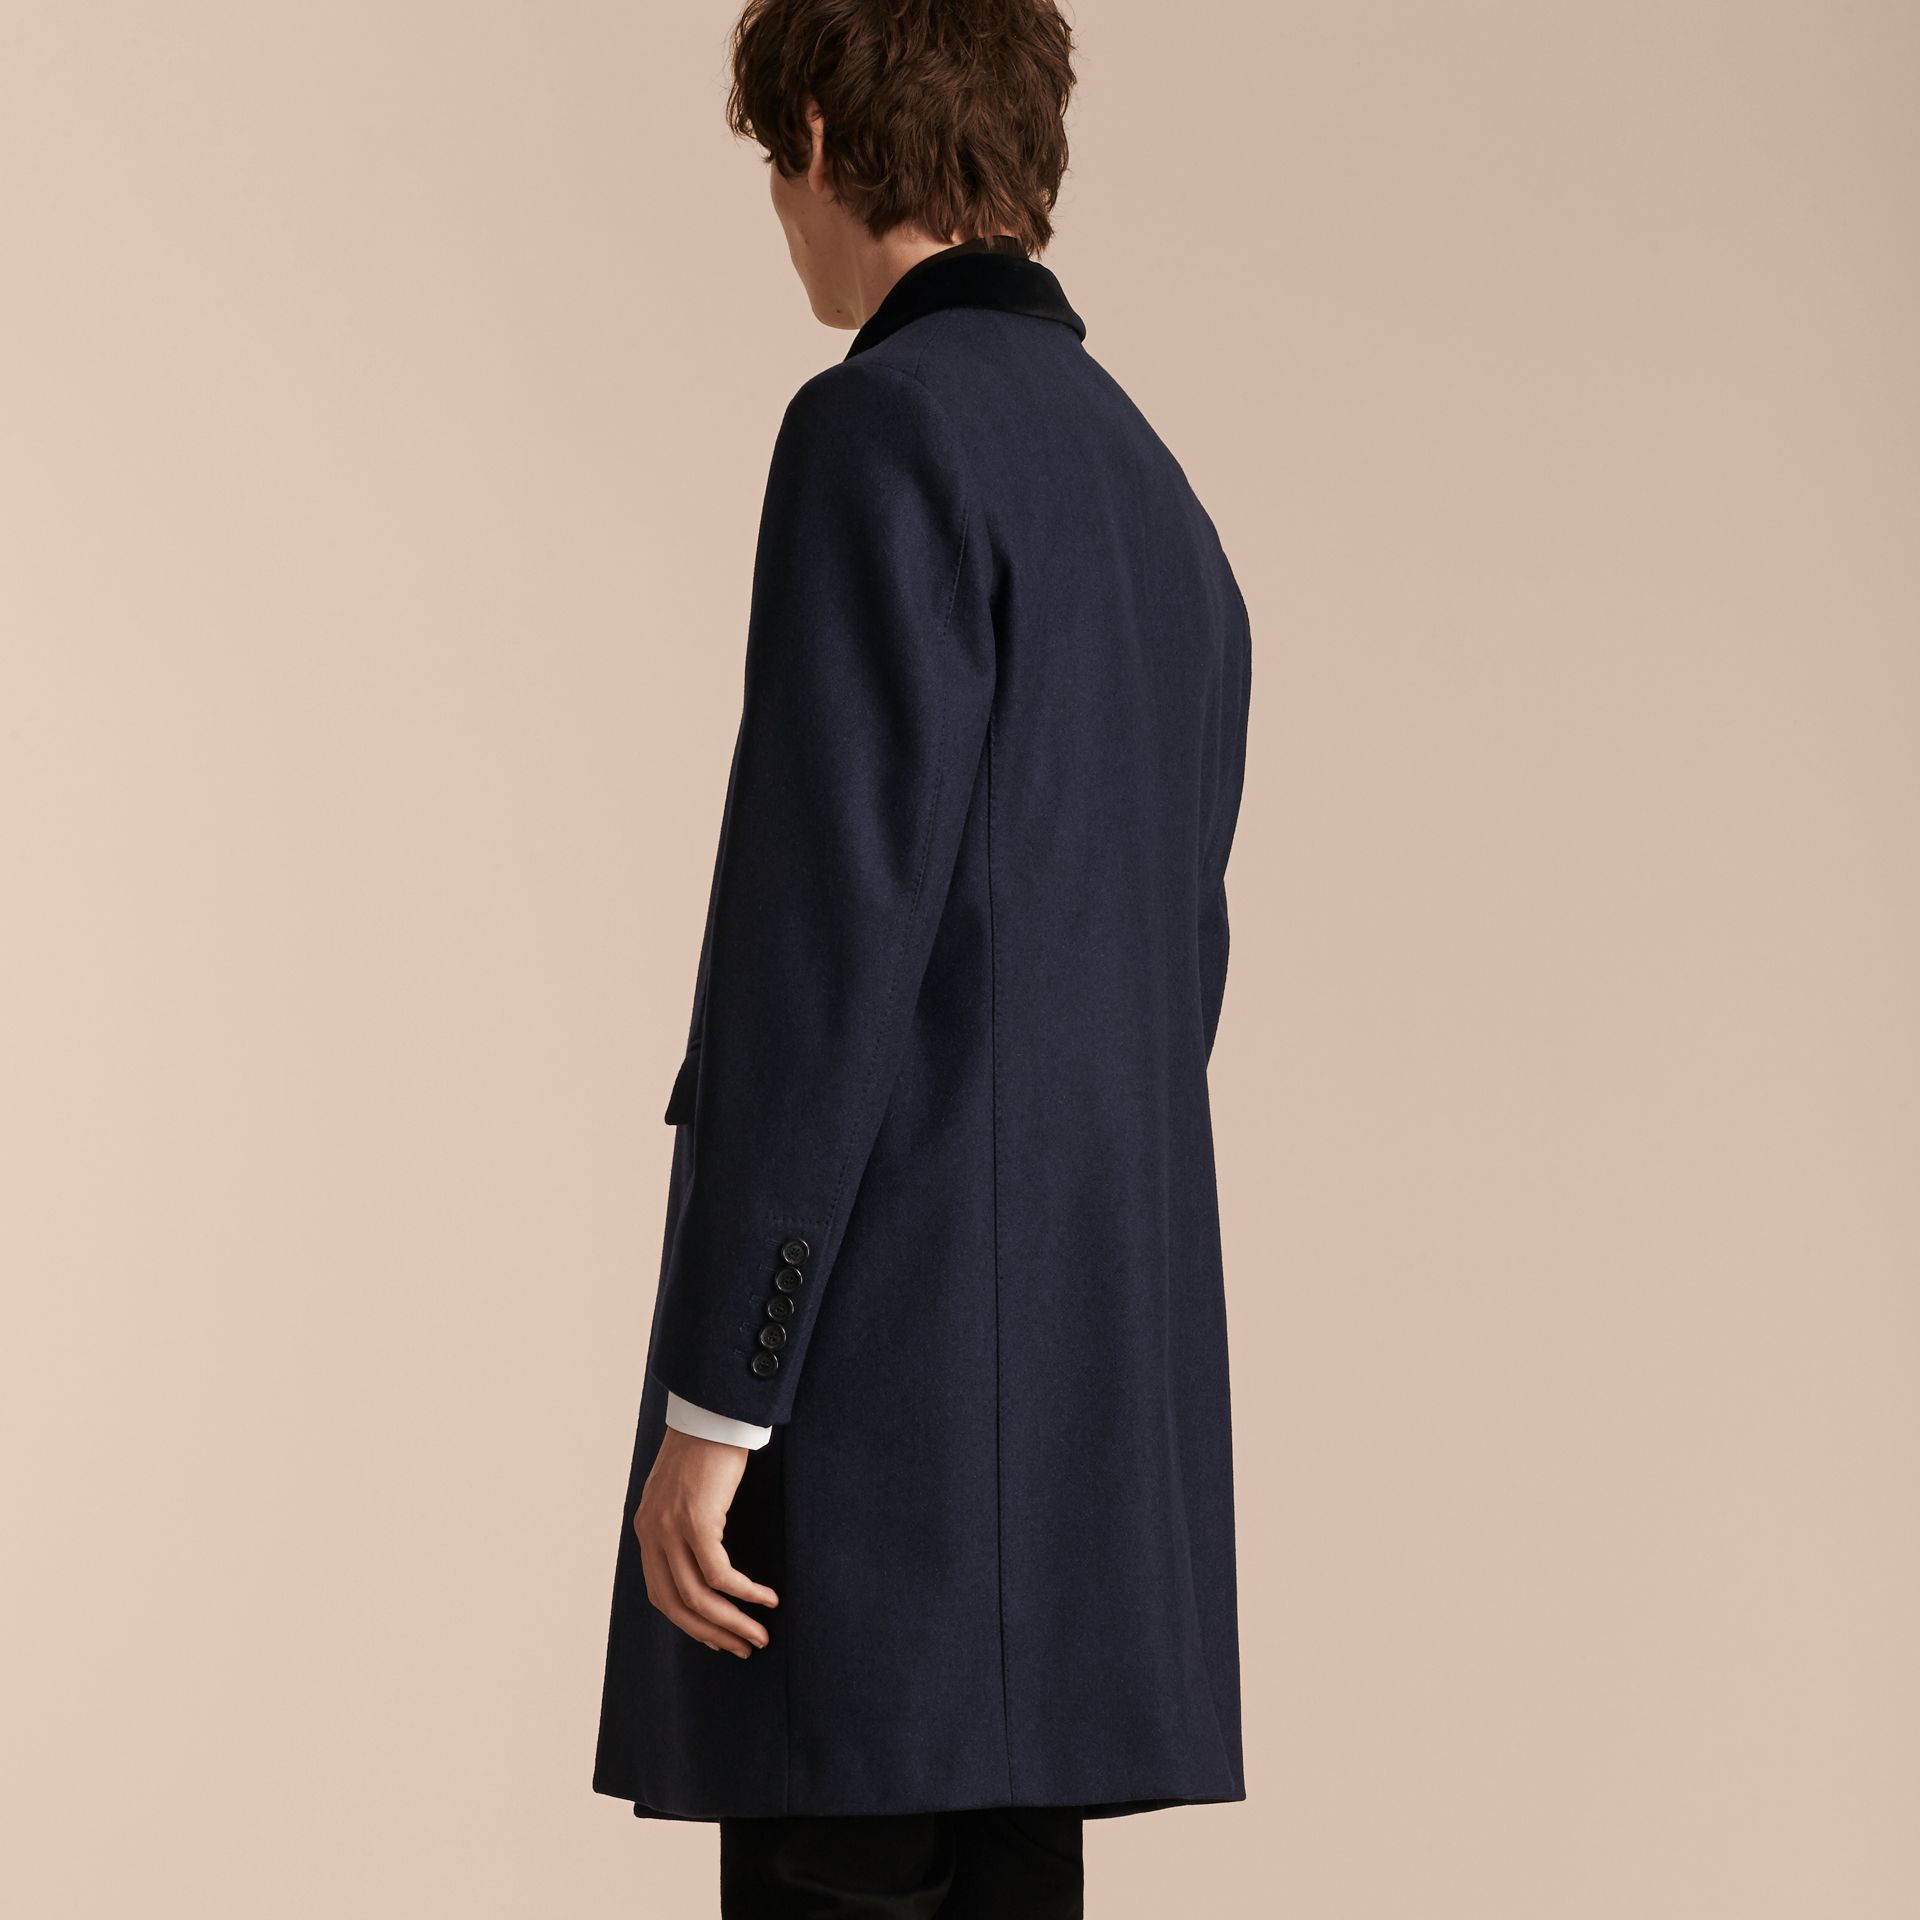 Storm blue Wool Cashmere Coat with Velvet Collar - gallery image 3